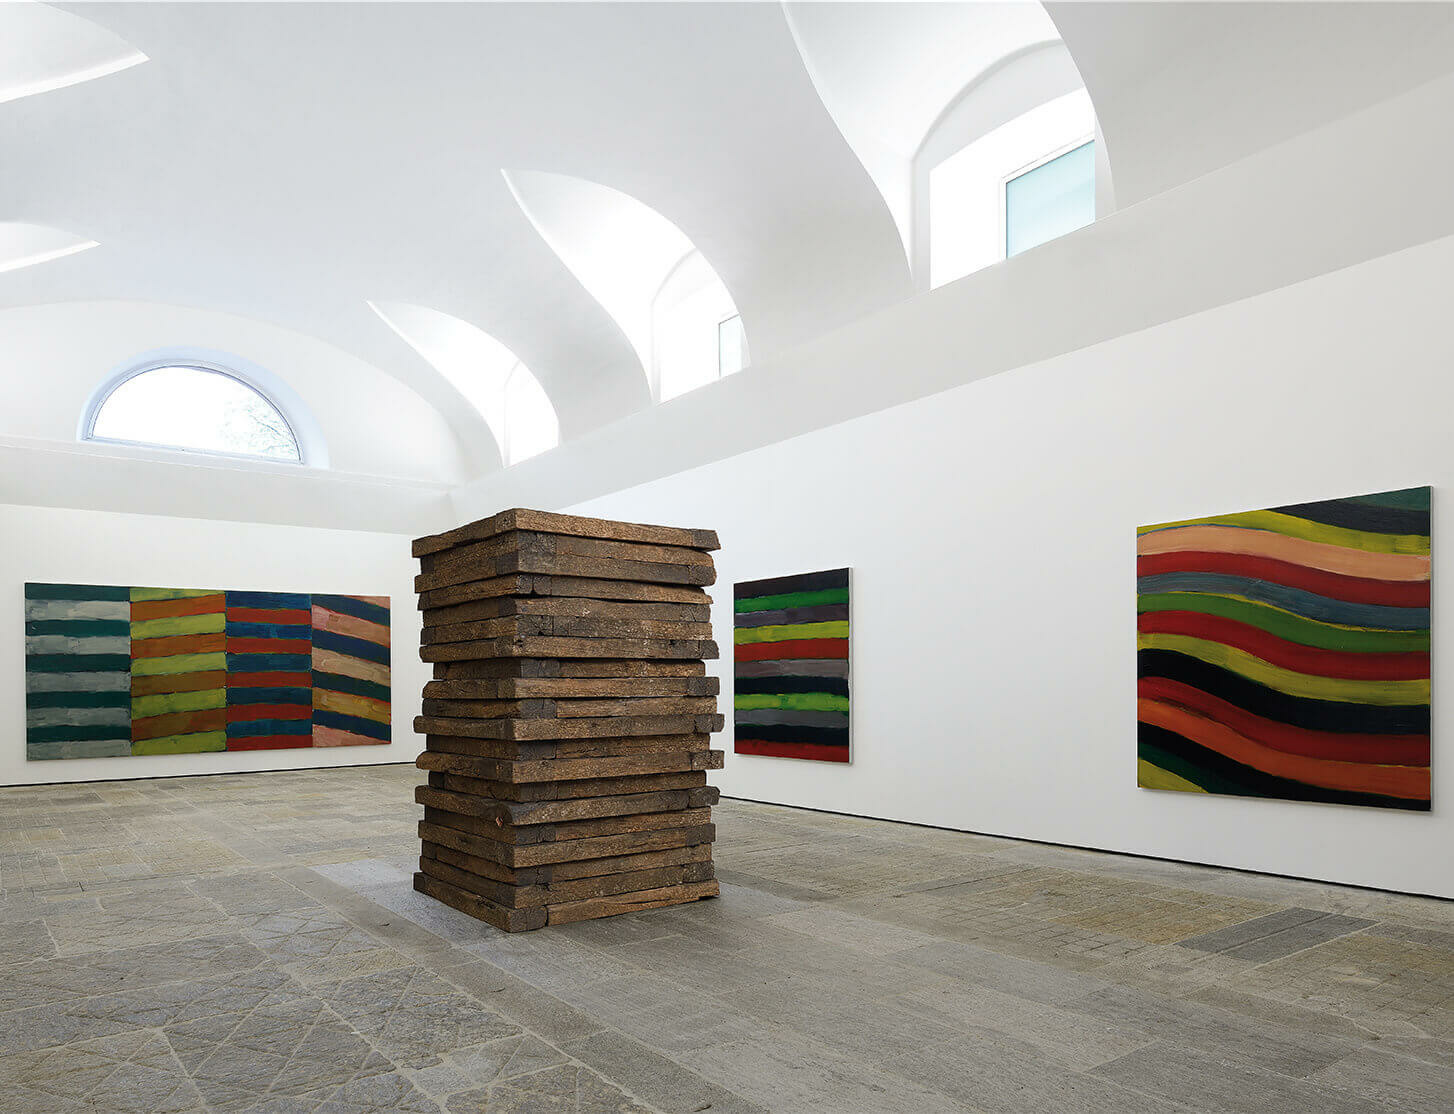 Sean Scully 'Long Light' opens at Villa Panza in Varese